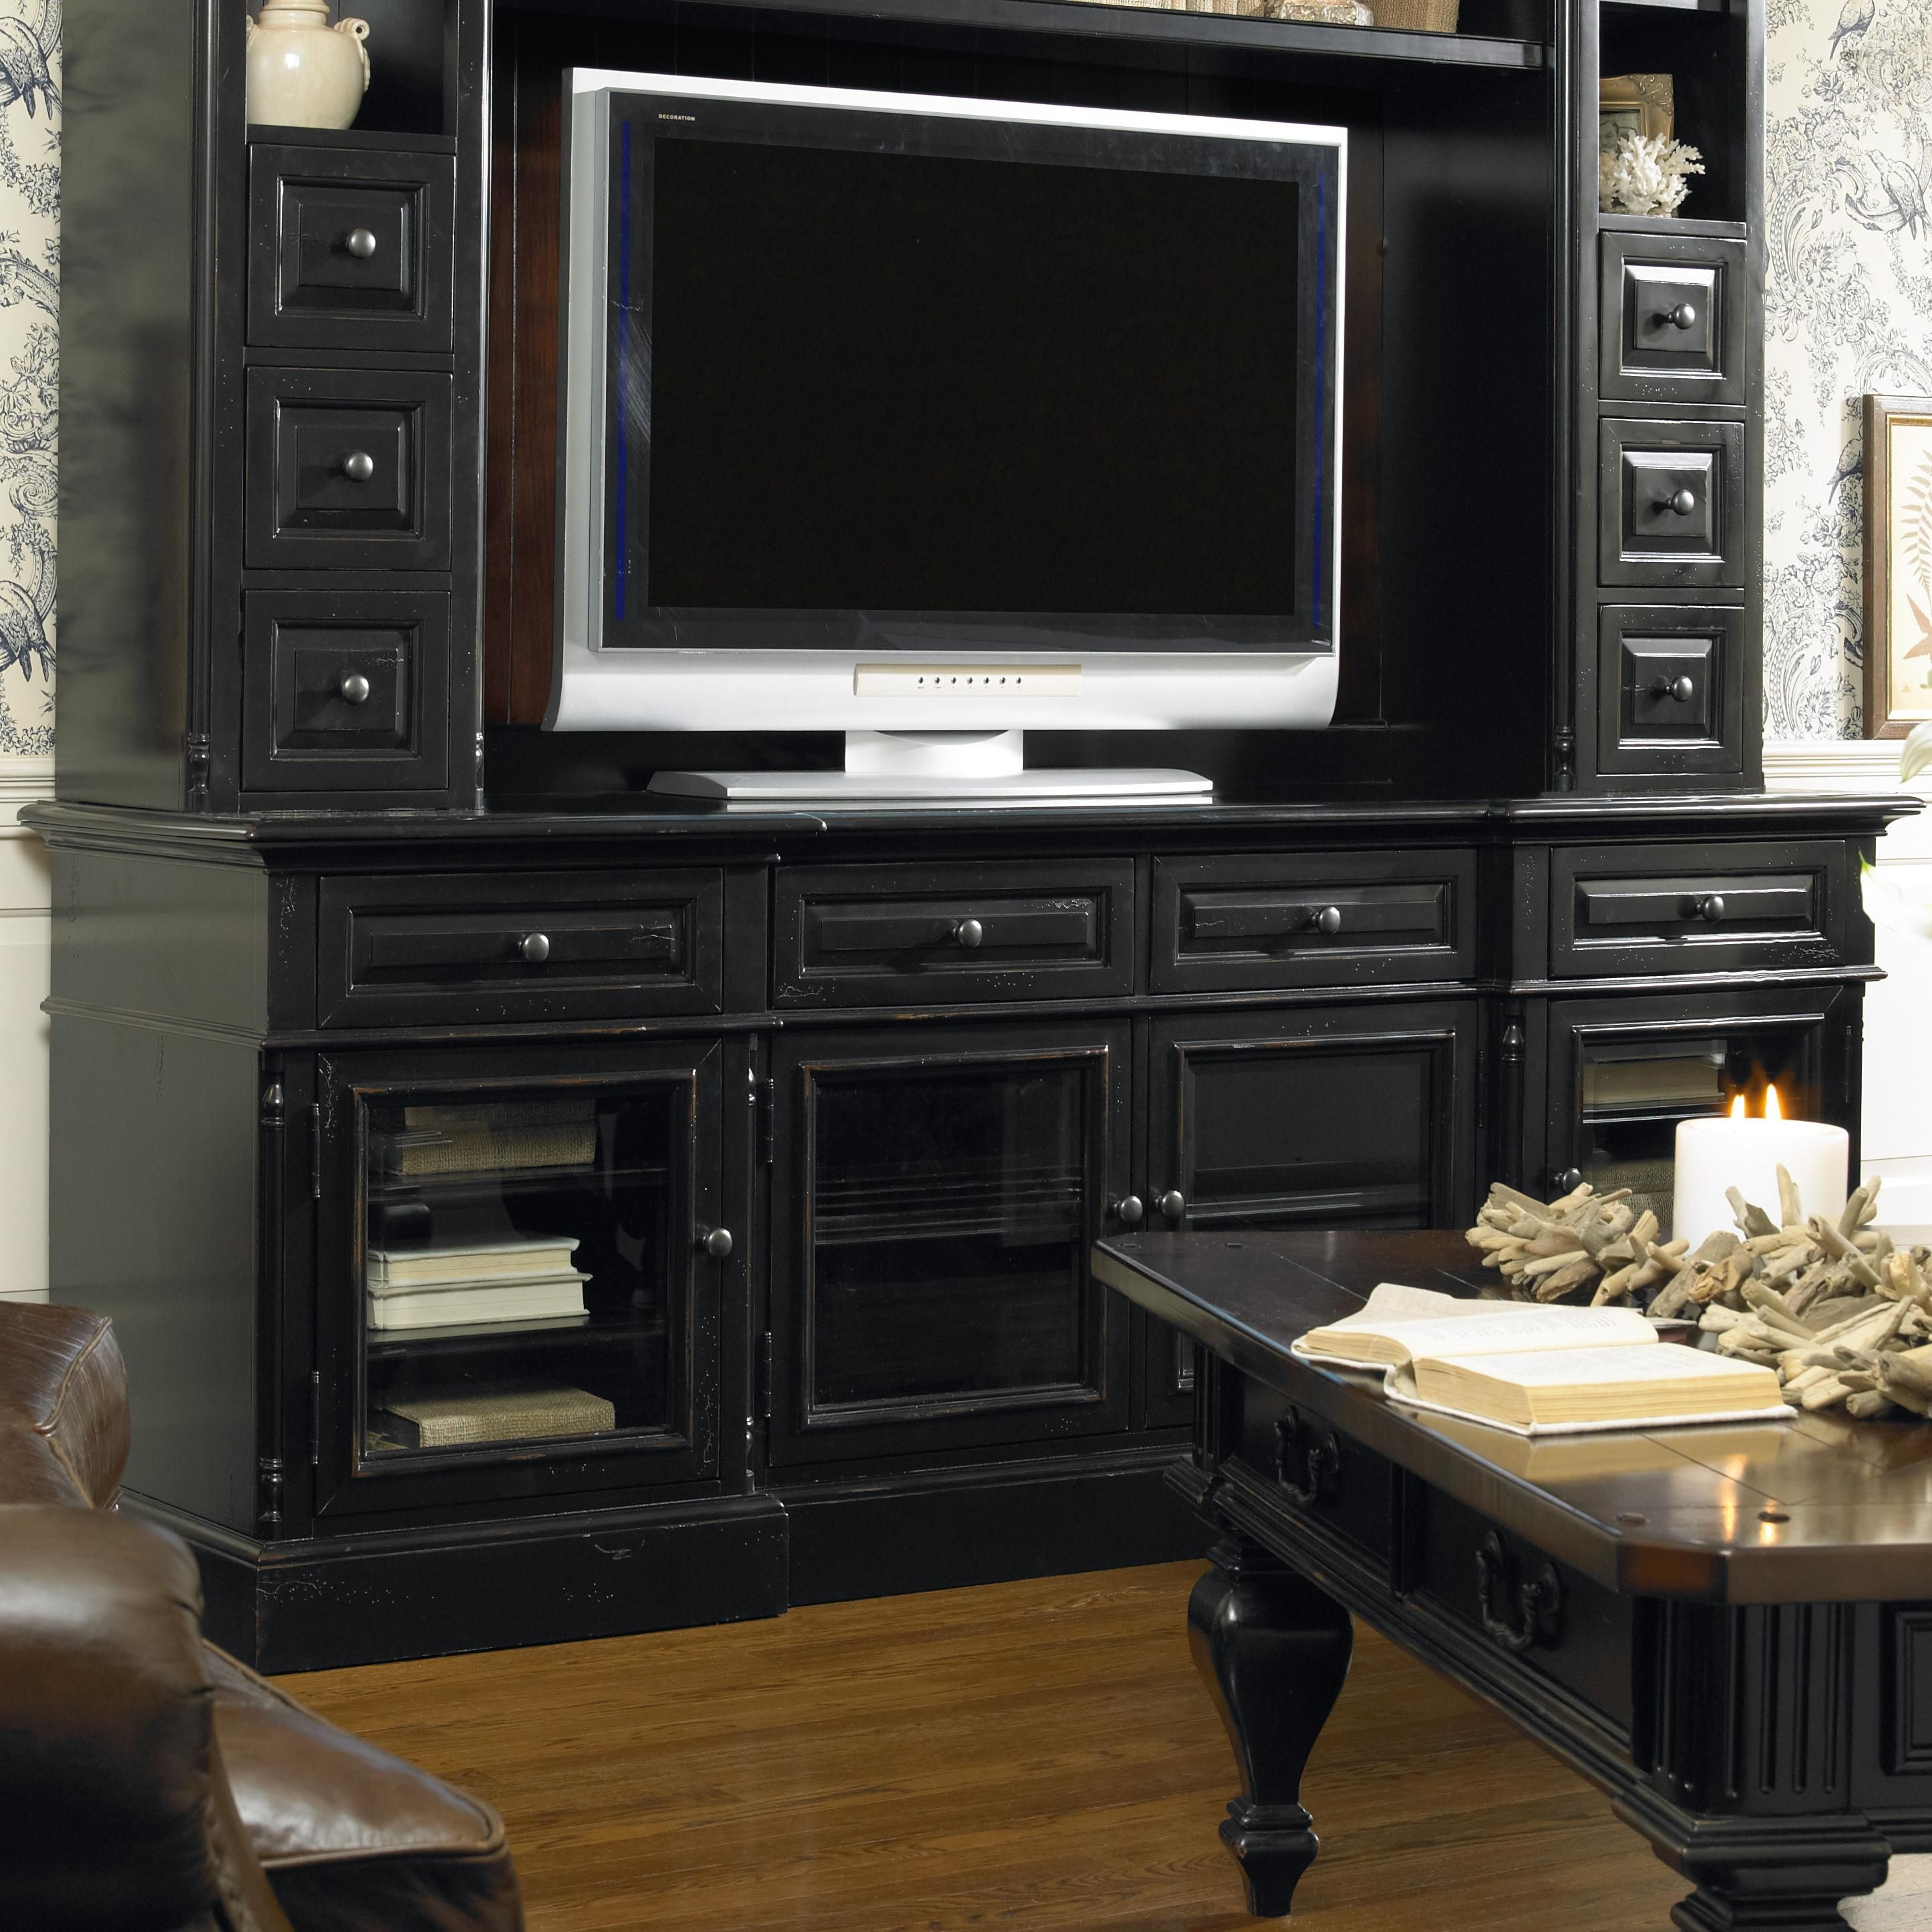 hooker furniture entertainment center. New Castle II Entertainment Console With 4 Doors By Hooker Furniture - AHFA TV Or Center L